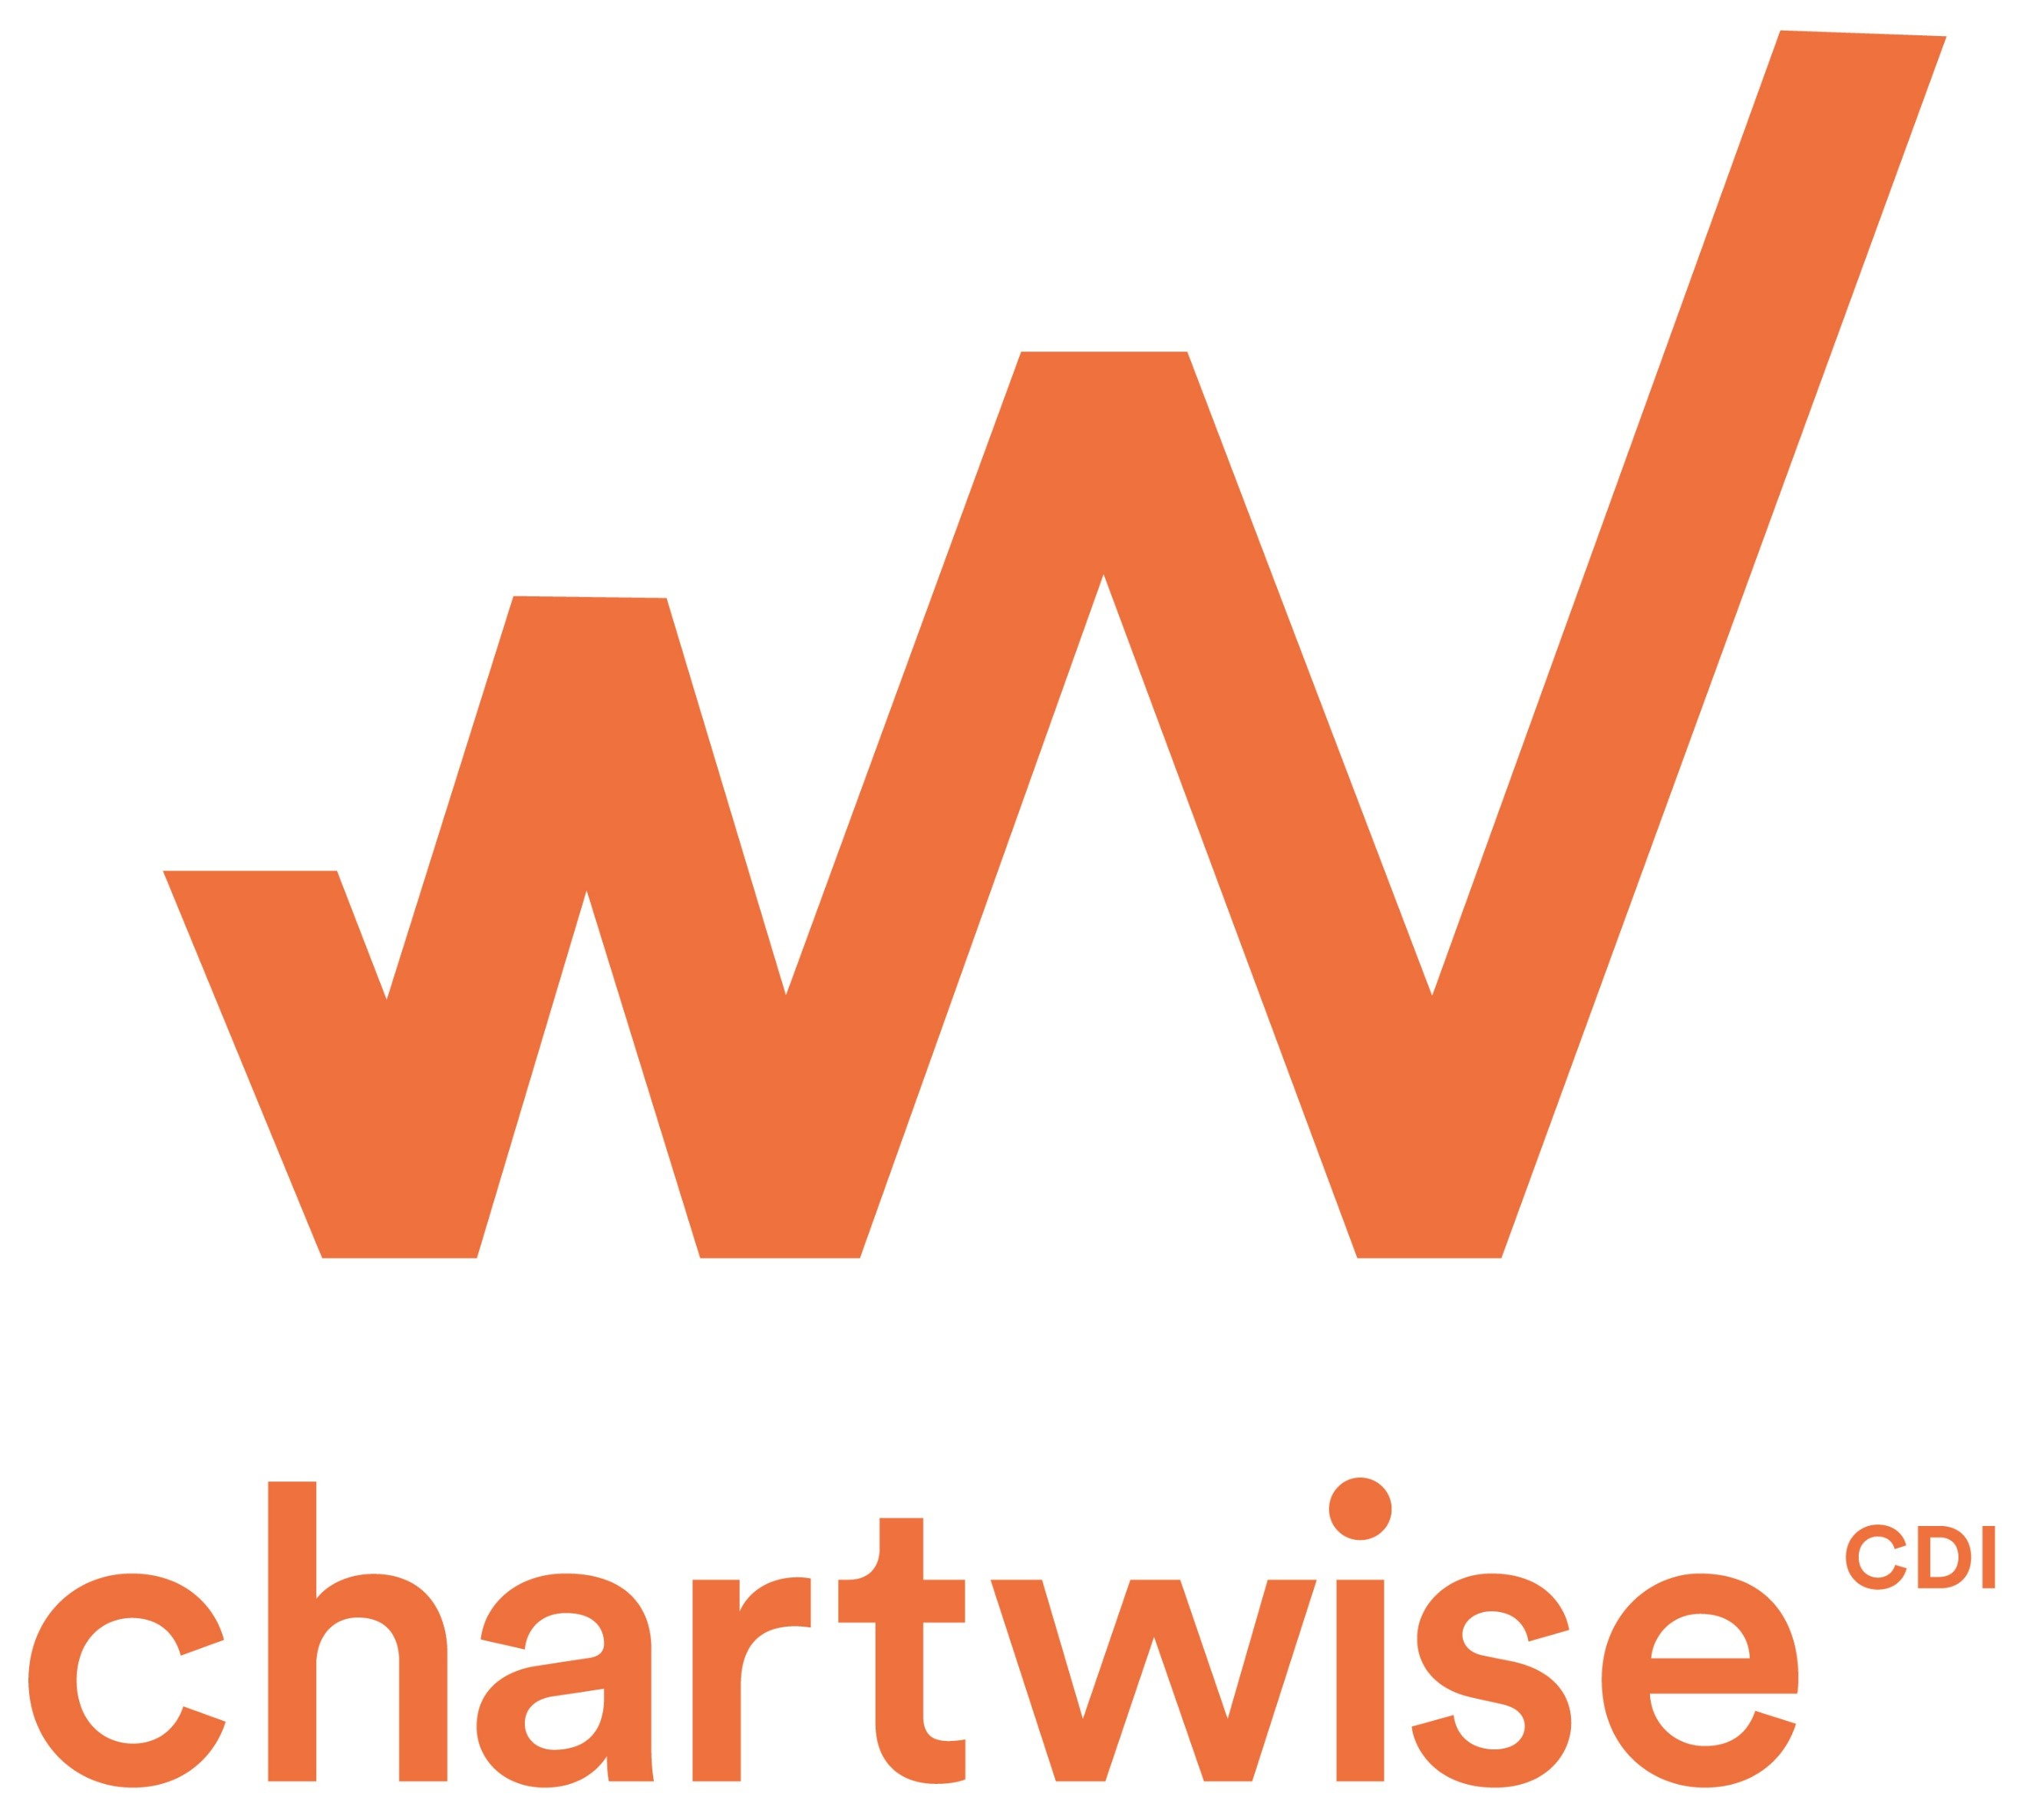 Chartwise